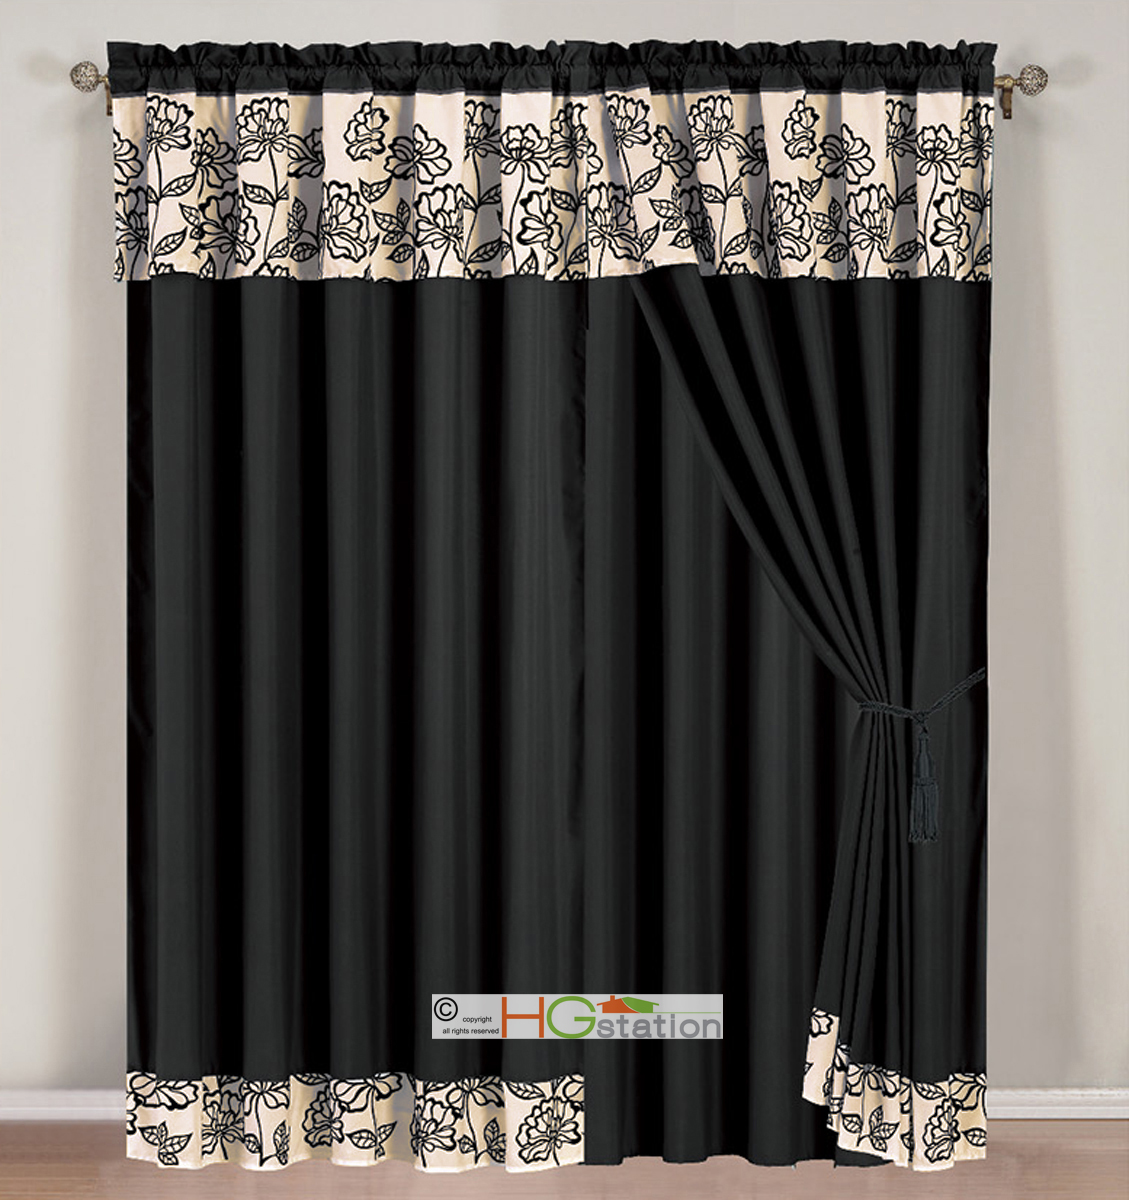 4 pc striped floral garden gothic curtain set black beige